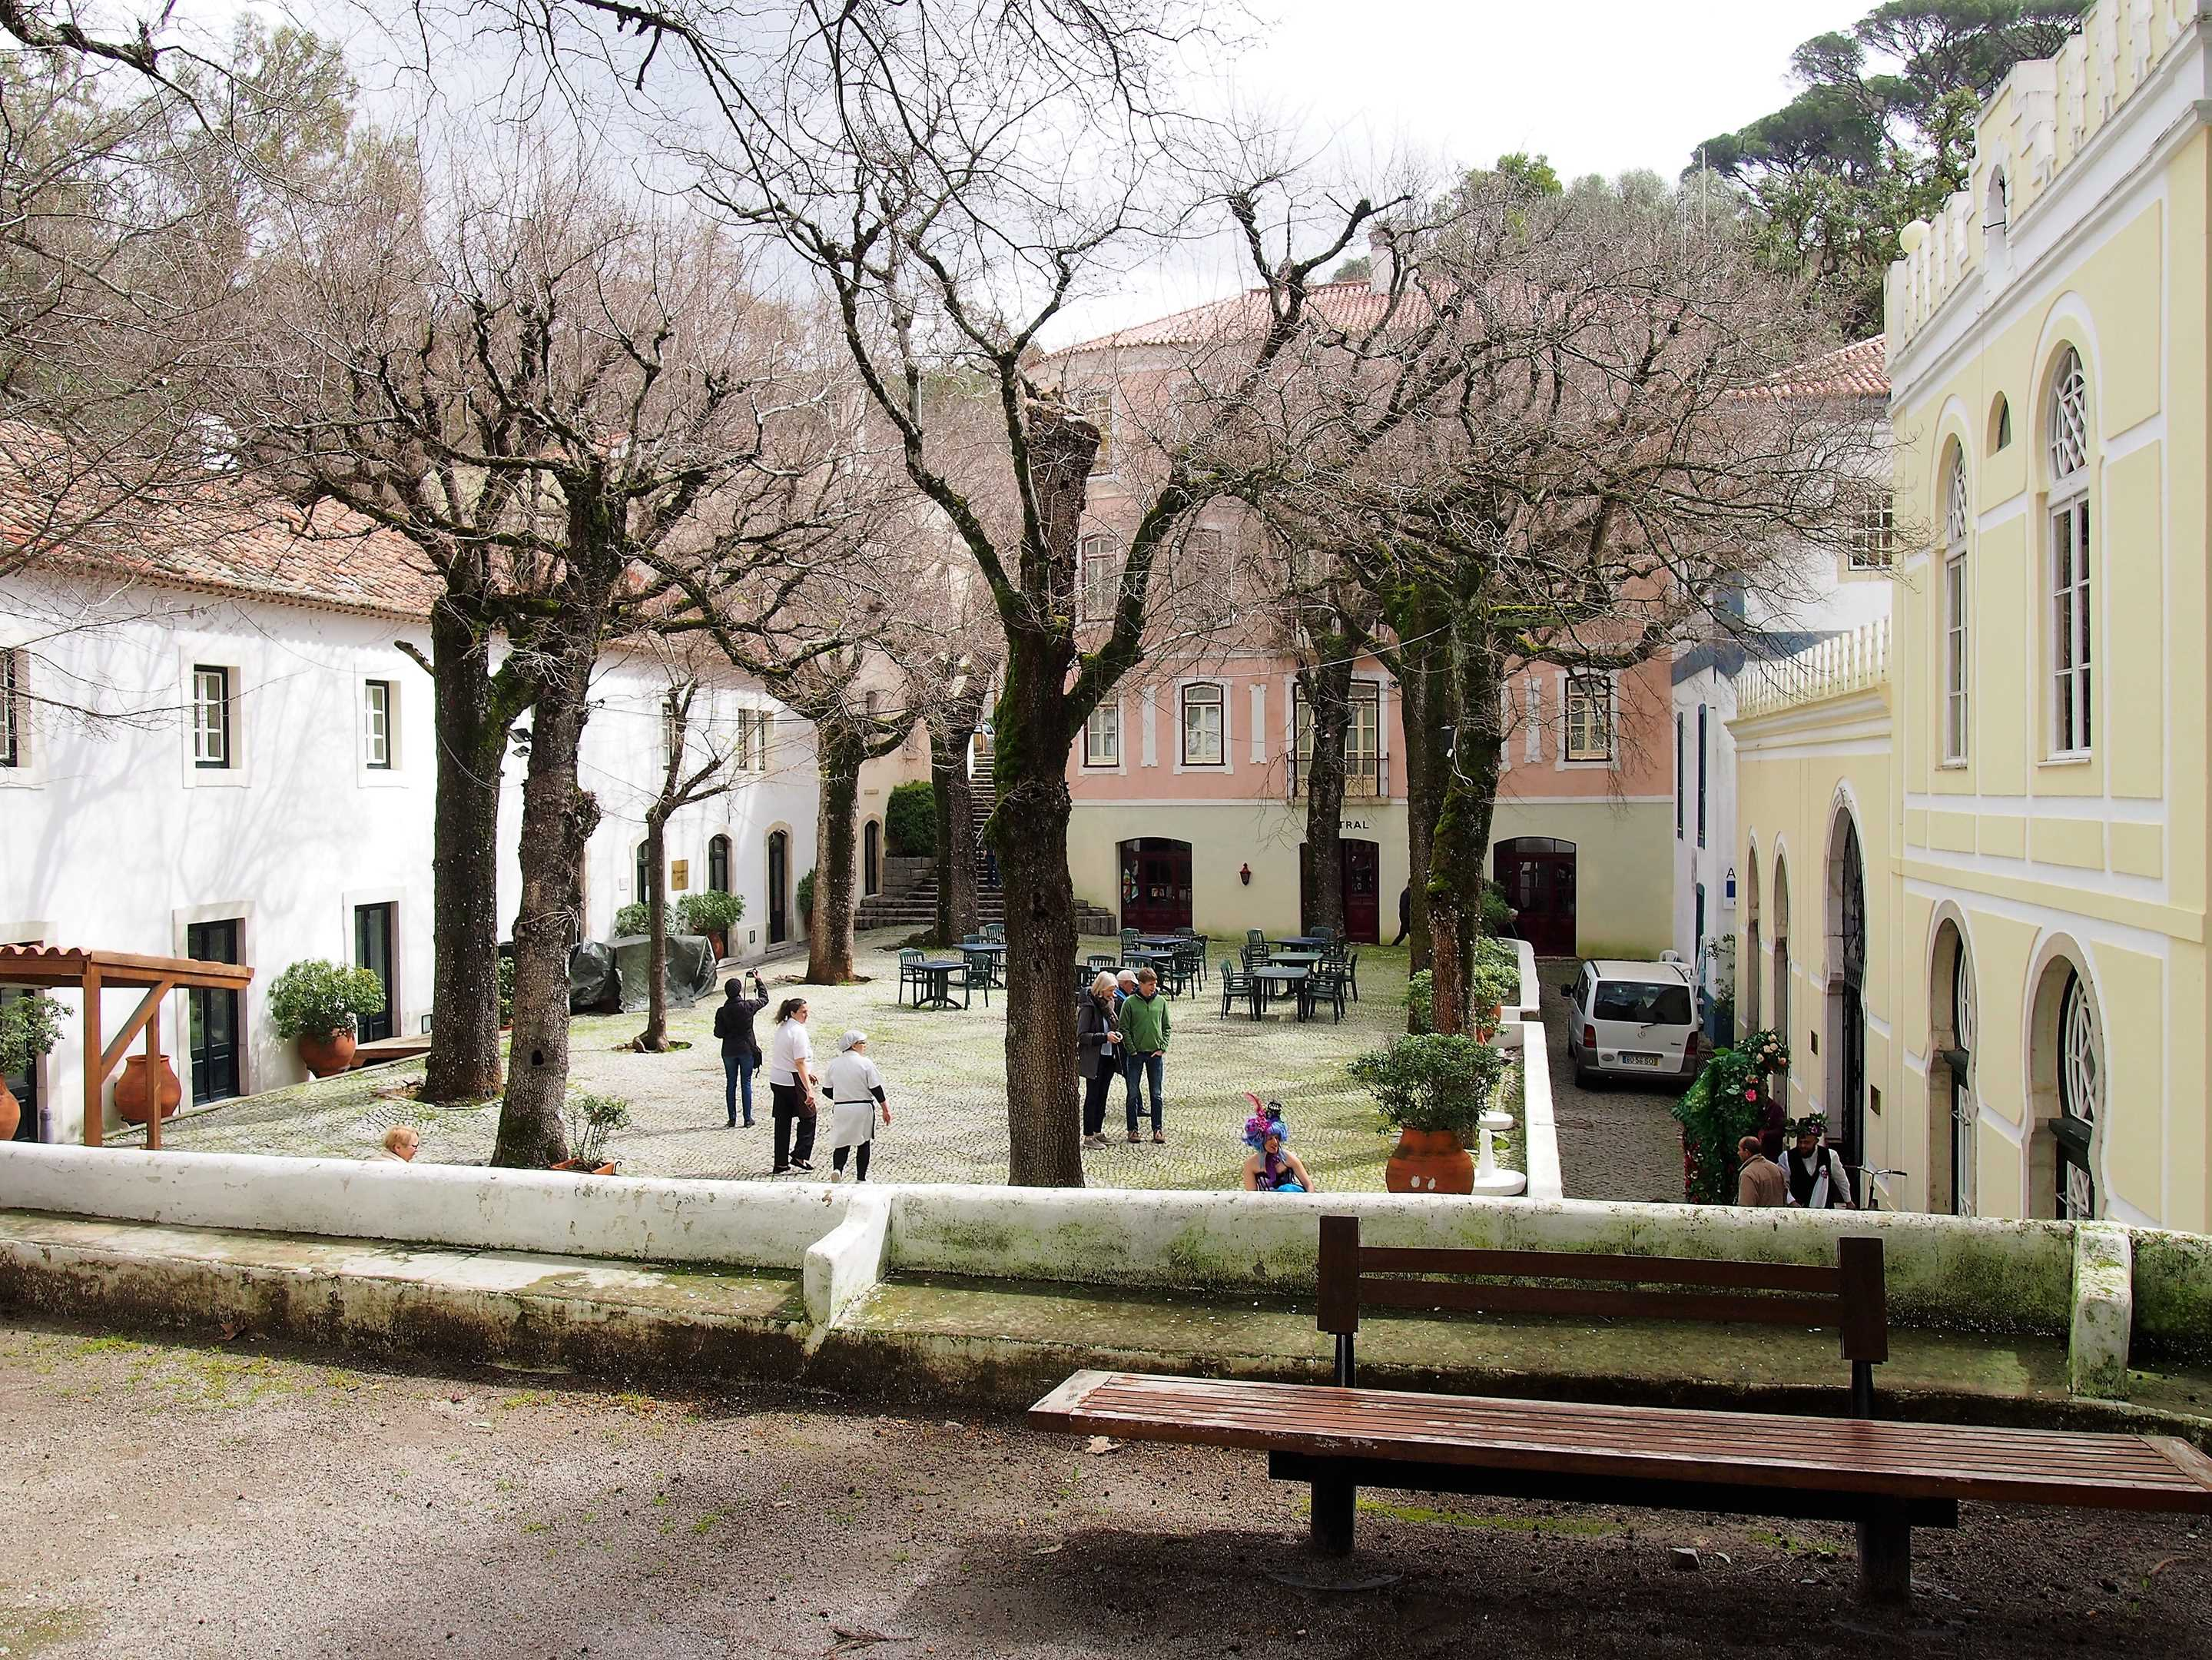 The main square at Caldas de Monchique